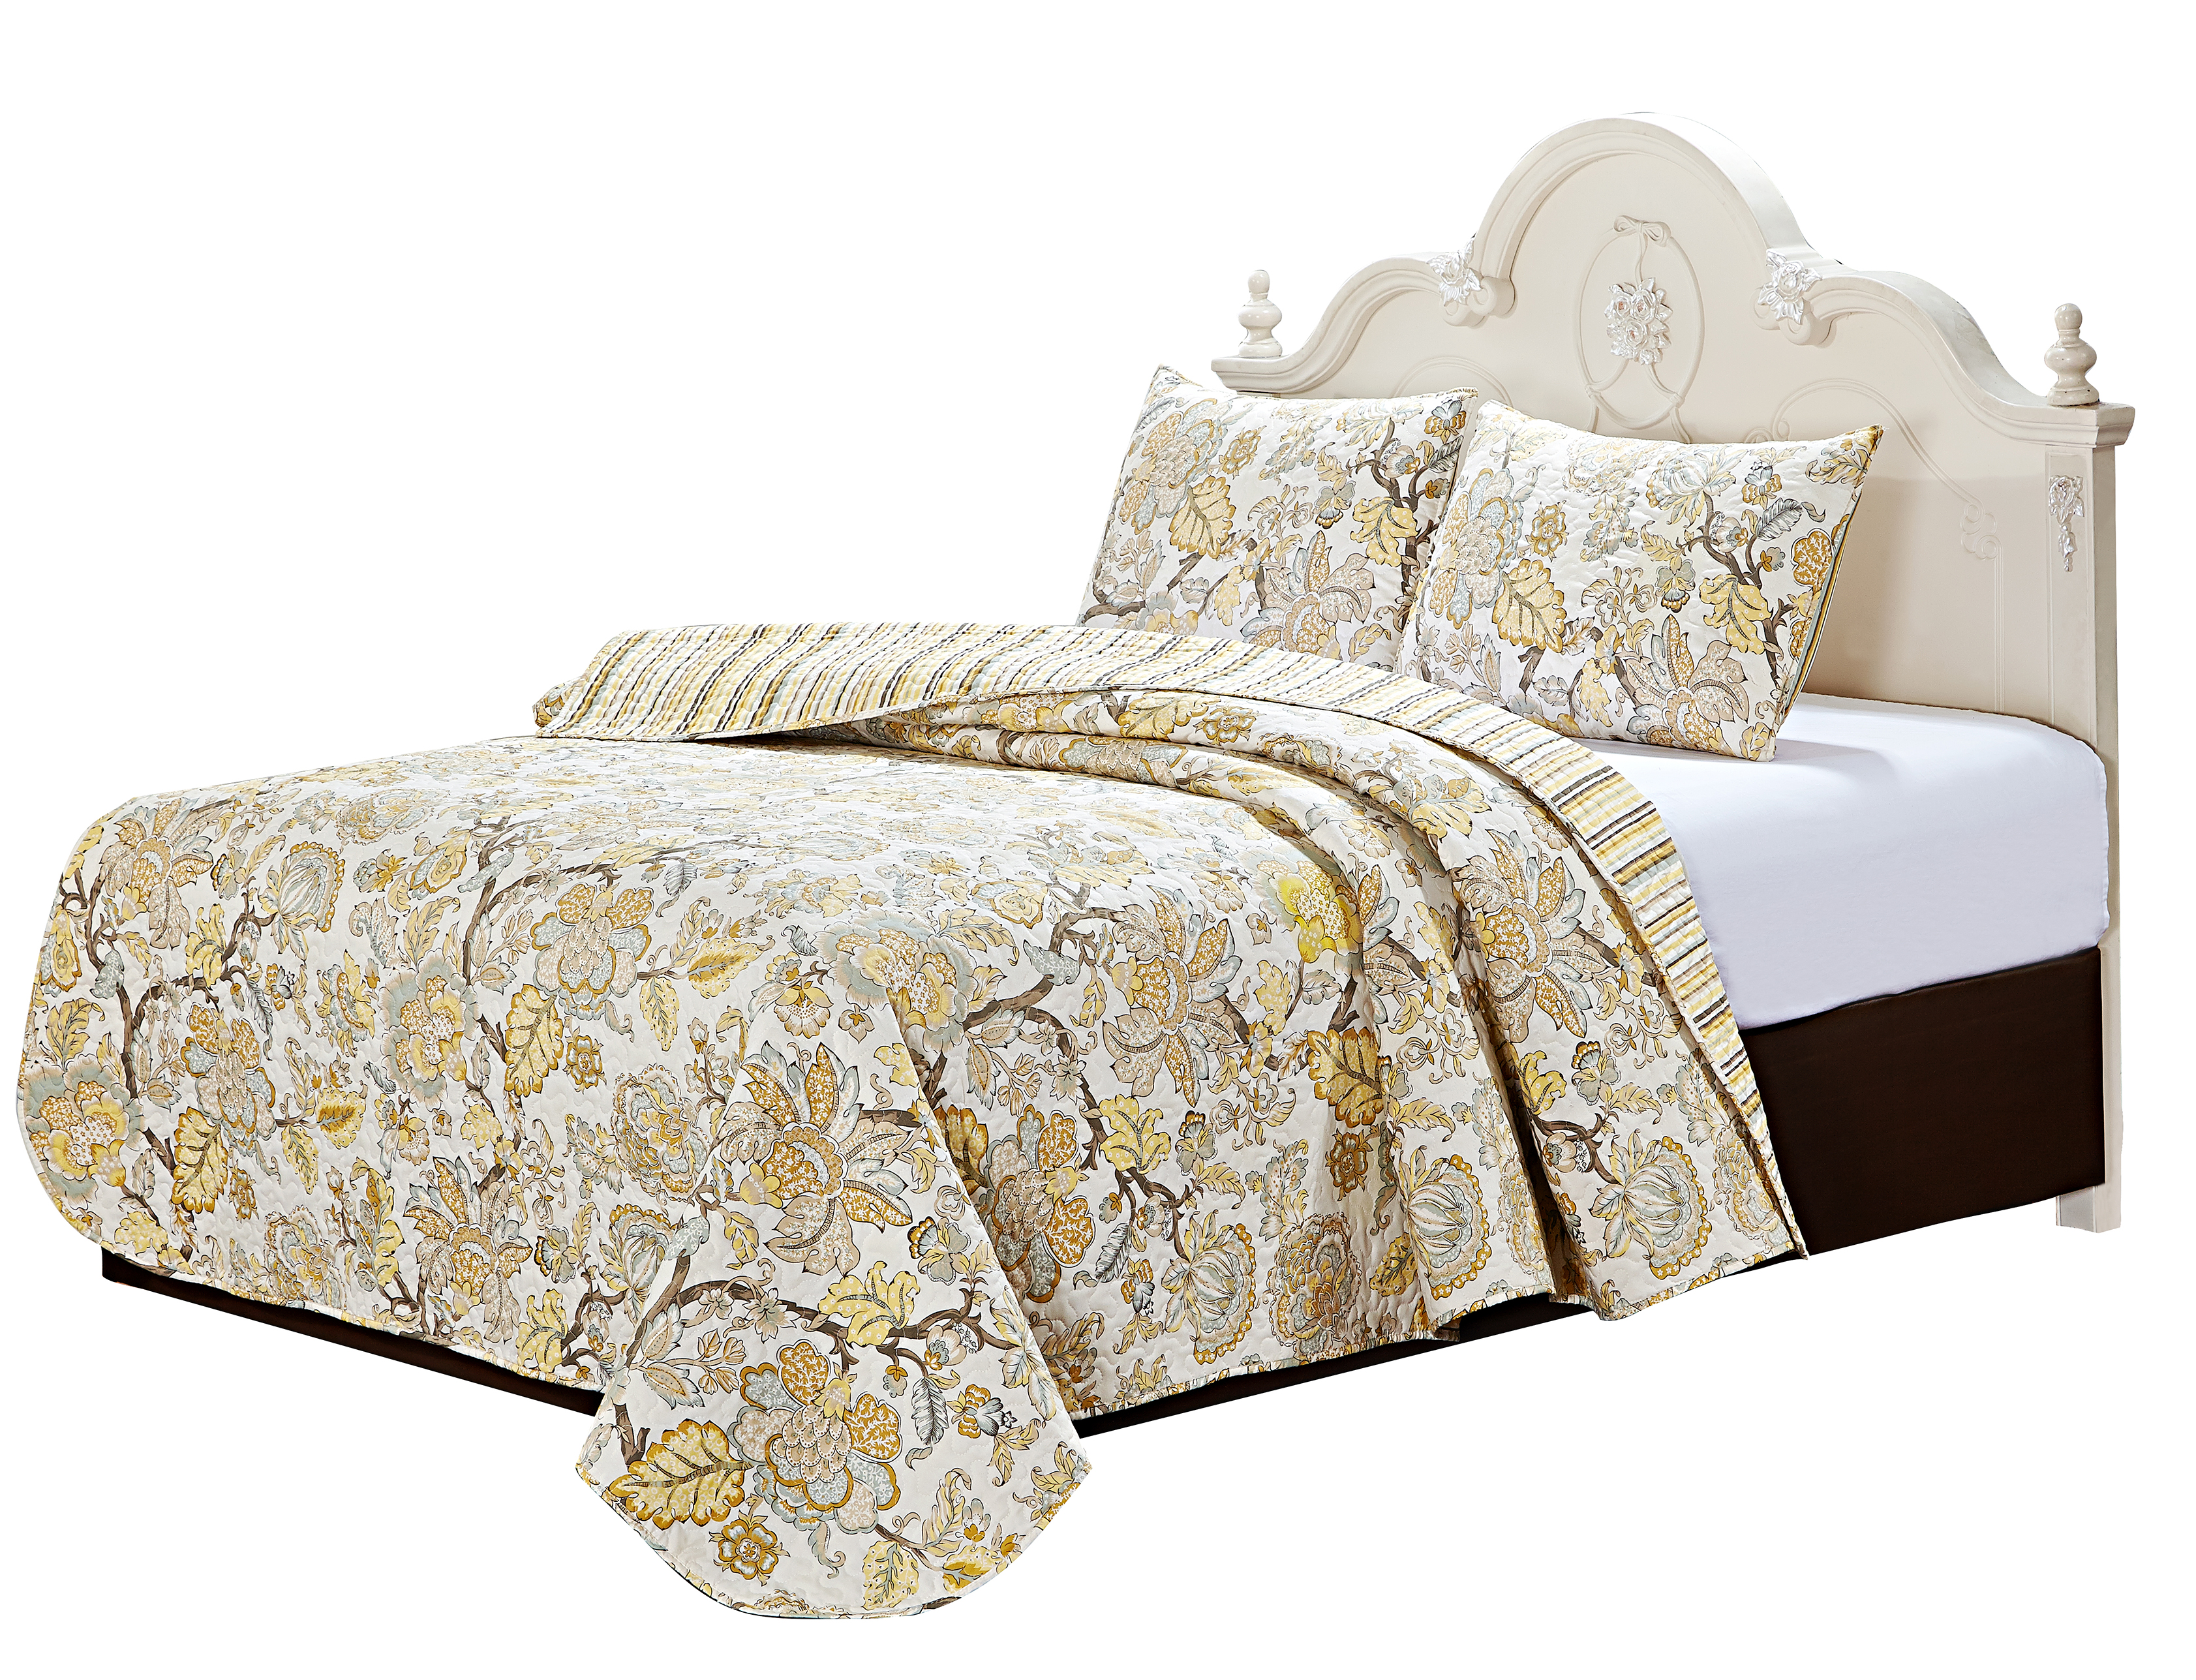 "Harvest Gold 4 Piece Set Super King-103"" x 111"", 3-Standard Pillow Shams"